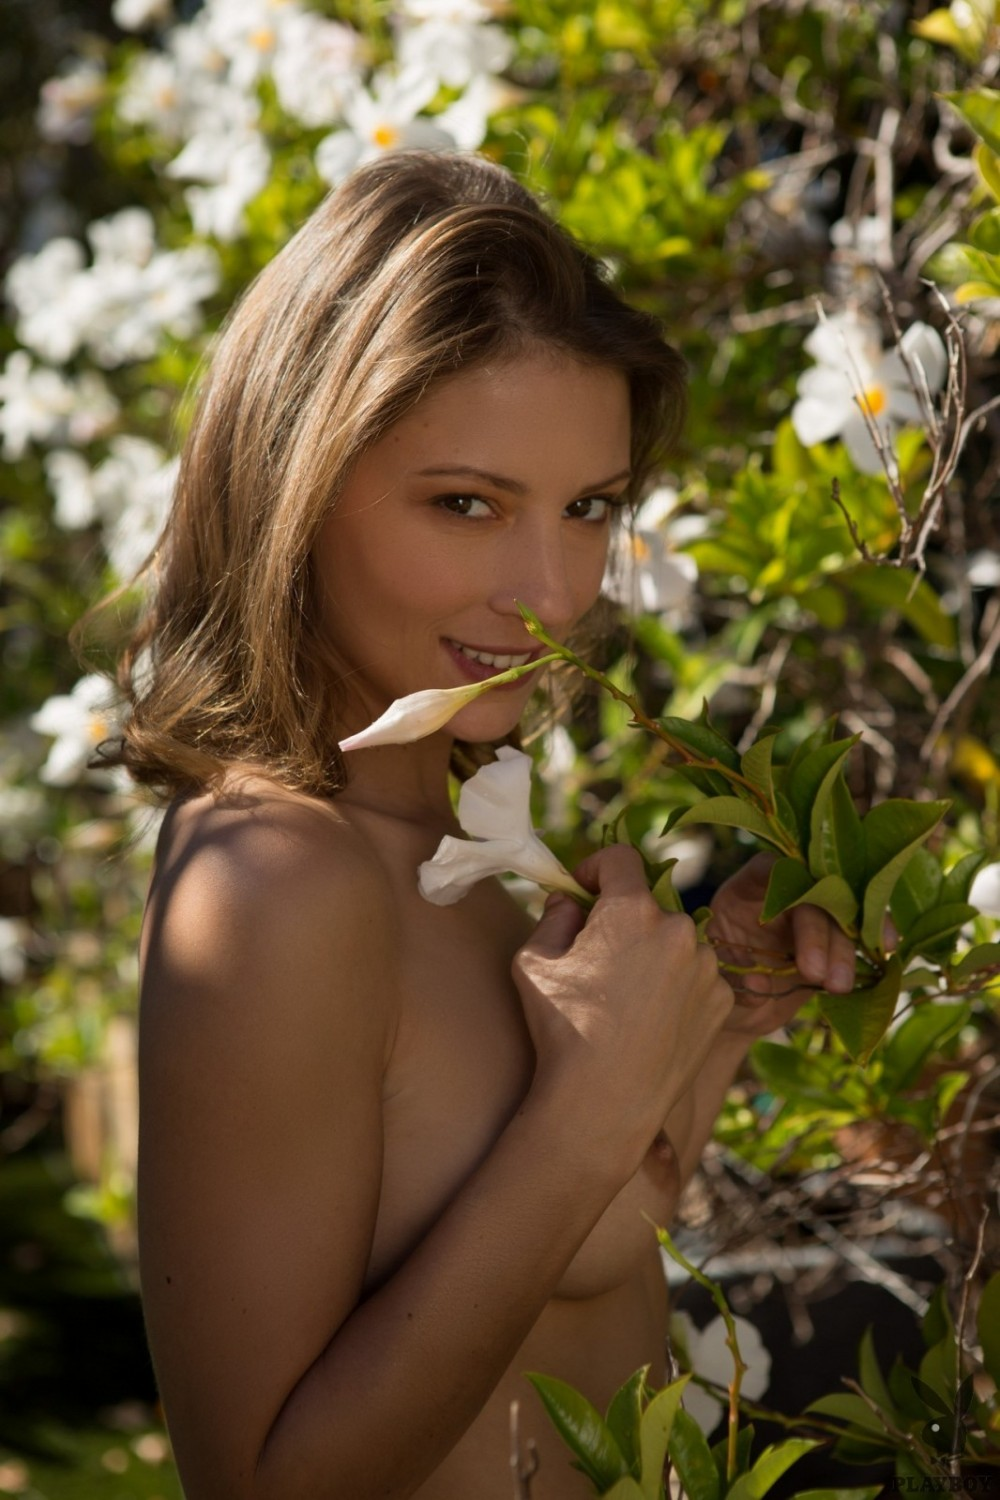 Naked cutie spends time in her beautiful garden